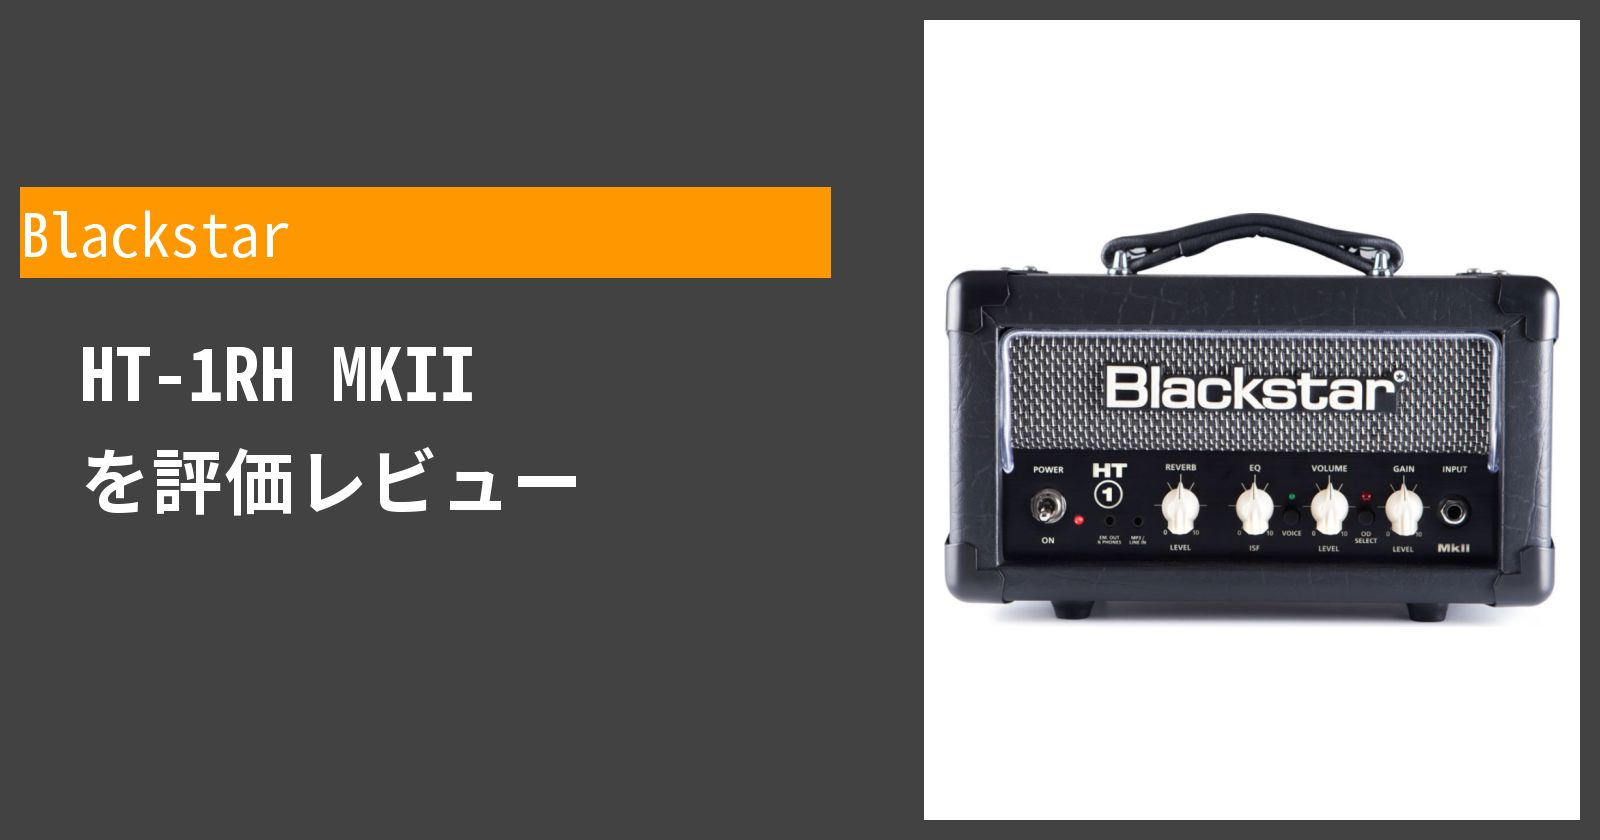 HT-1RH MKIIを徹底評価